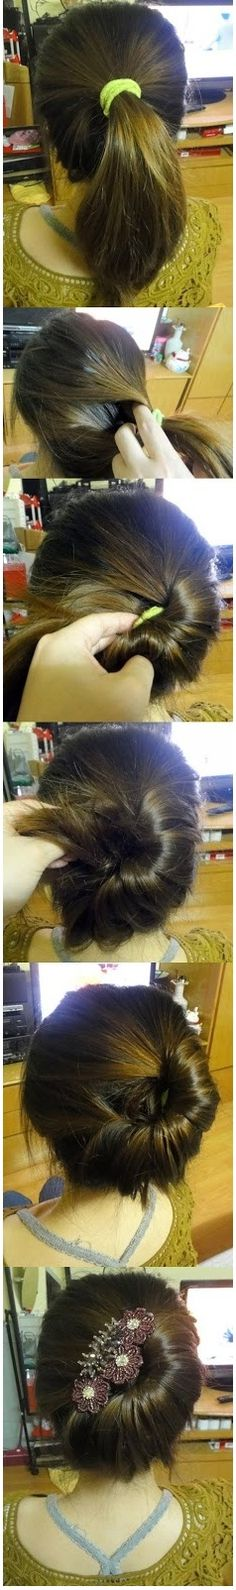 Chingnon Hairstyle - DIY Hairstyle Ready for you Hairstyle - Can Be Made For Little Girls